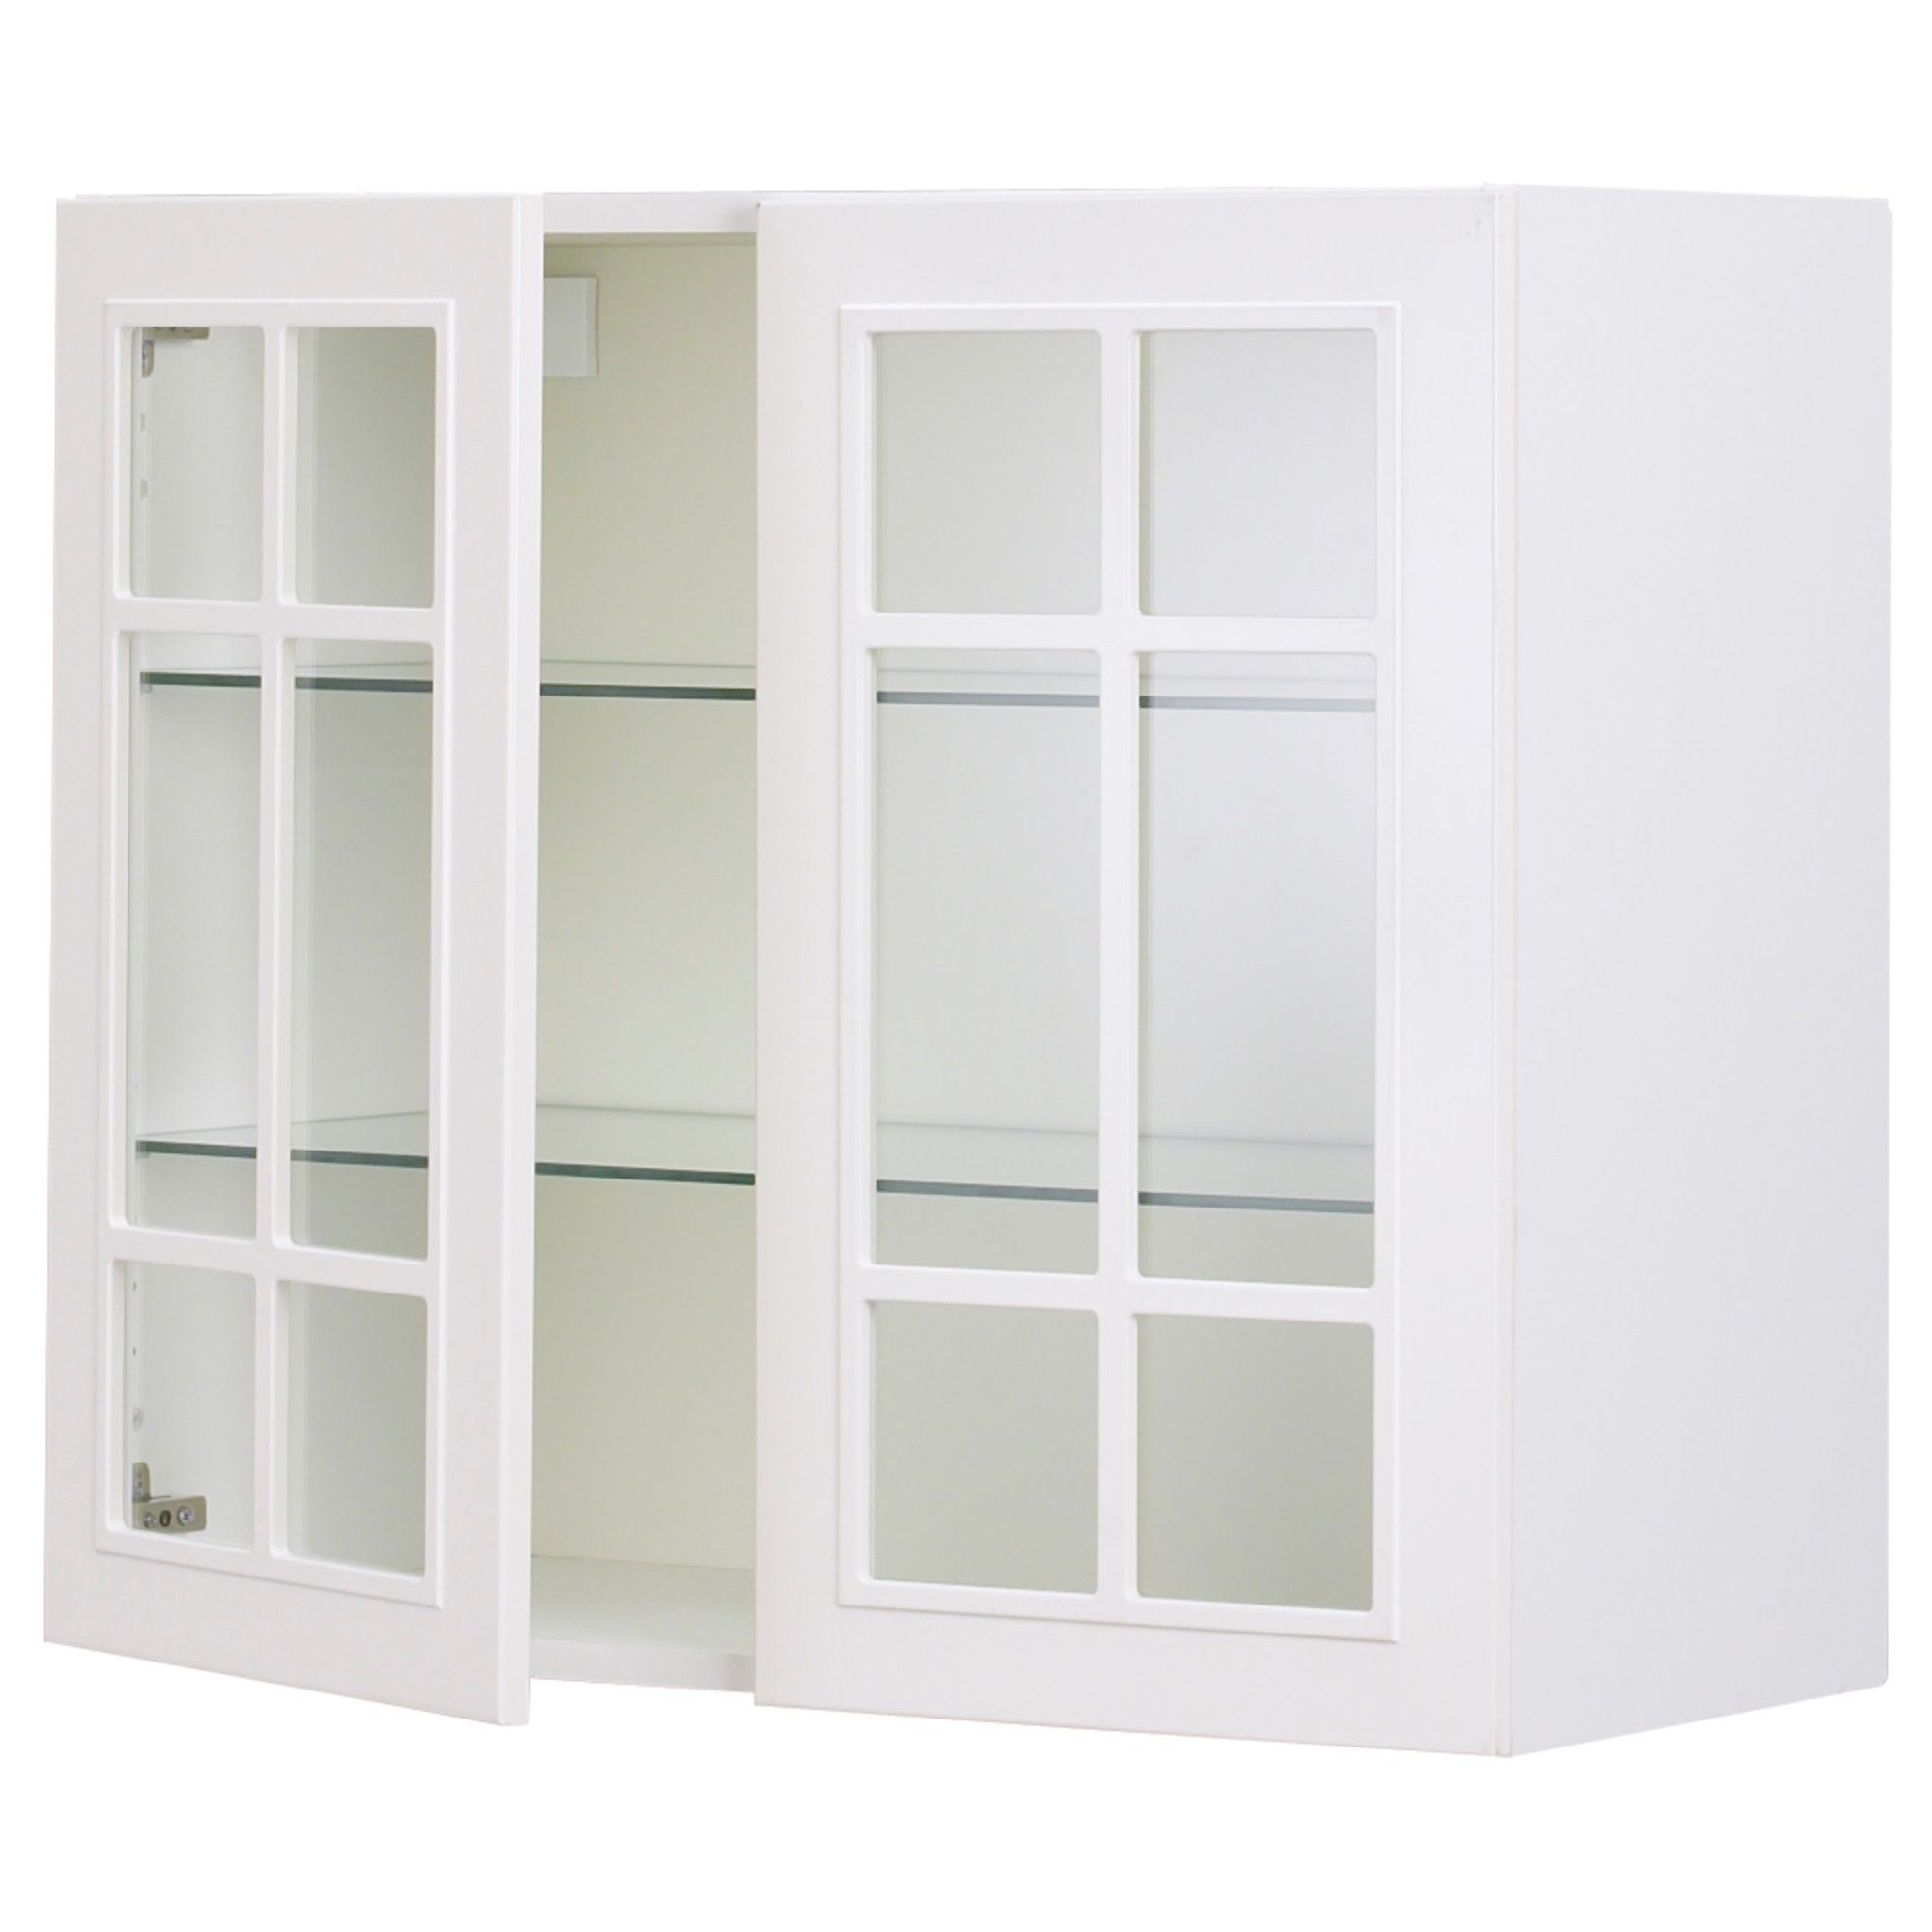 $215 - 30 x 30 glass front wall cabinet. AKURUM Wall cabinet with 2 glass